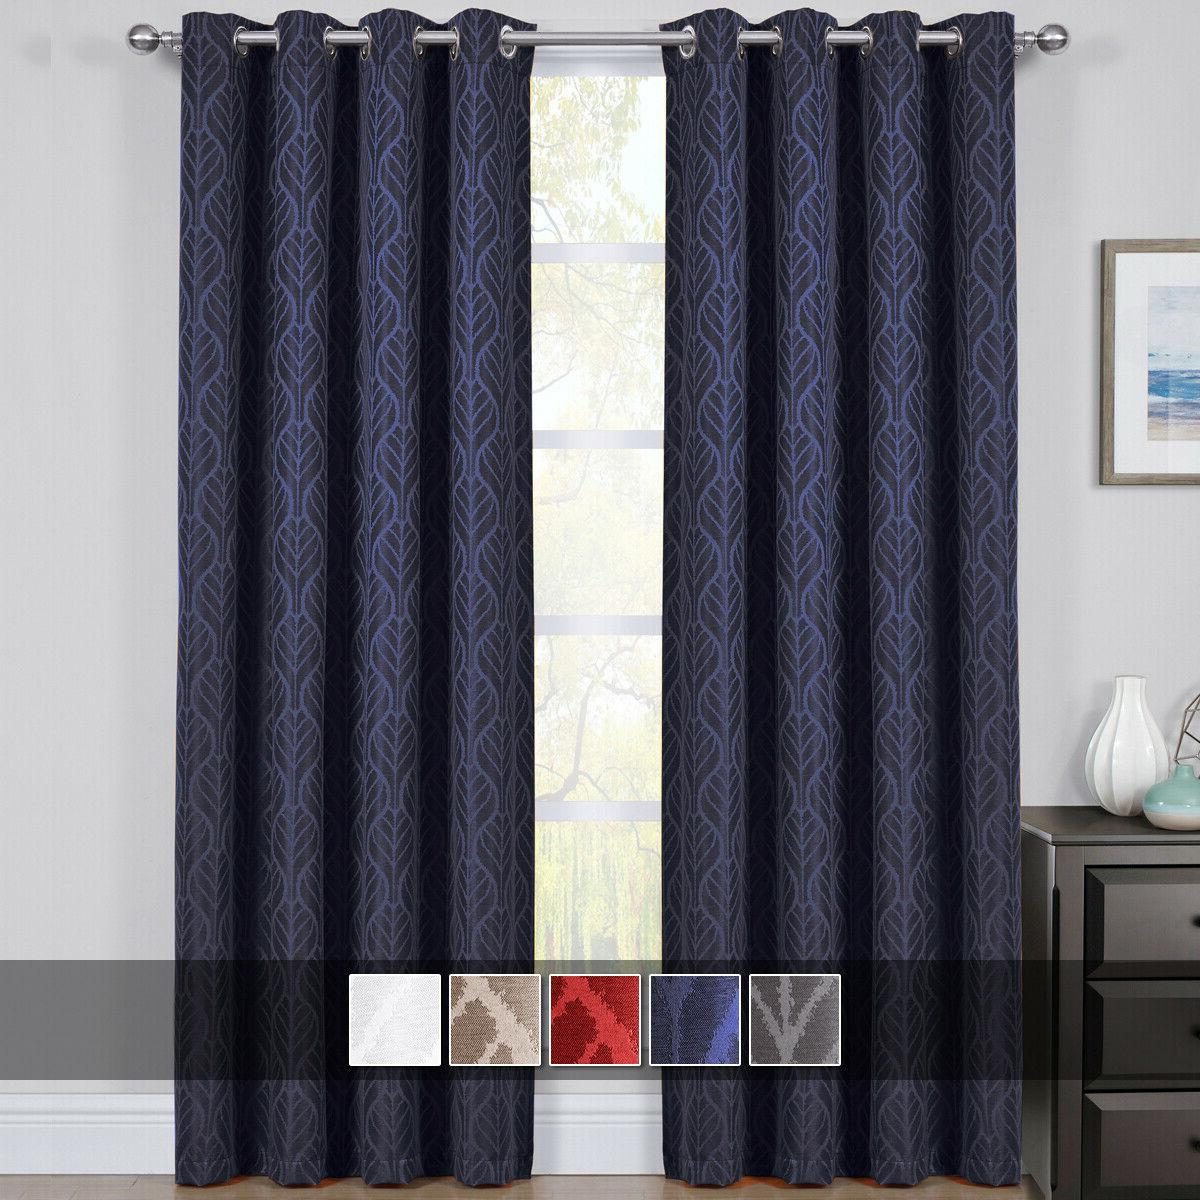 hilton blackout curtains panels jacquard thermal insulated